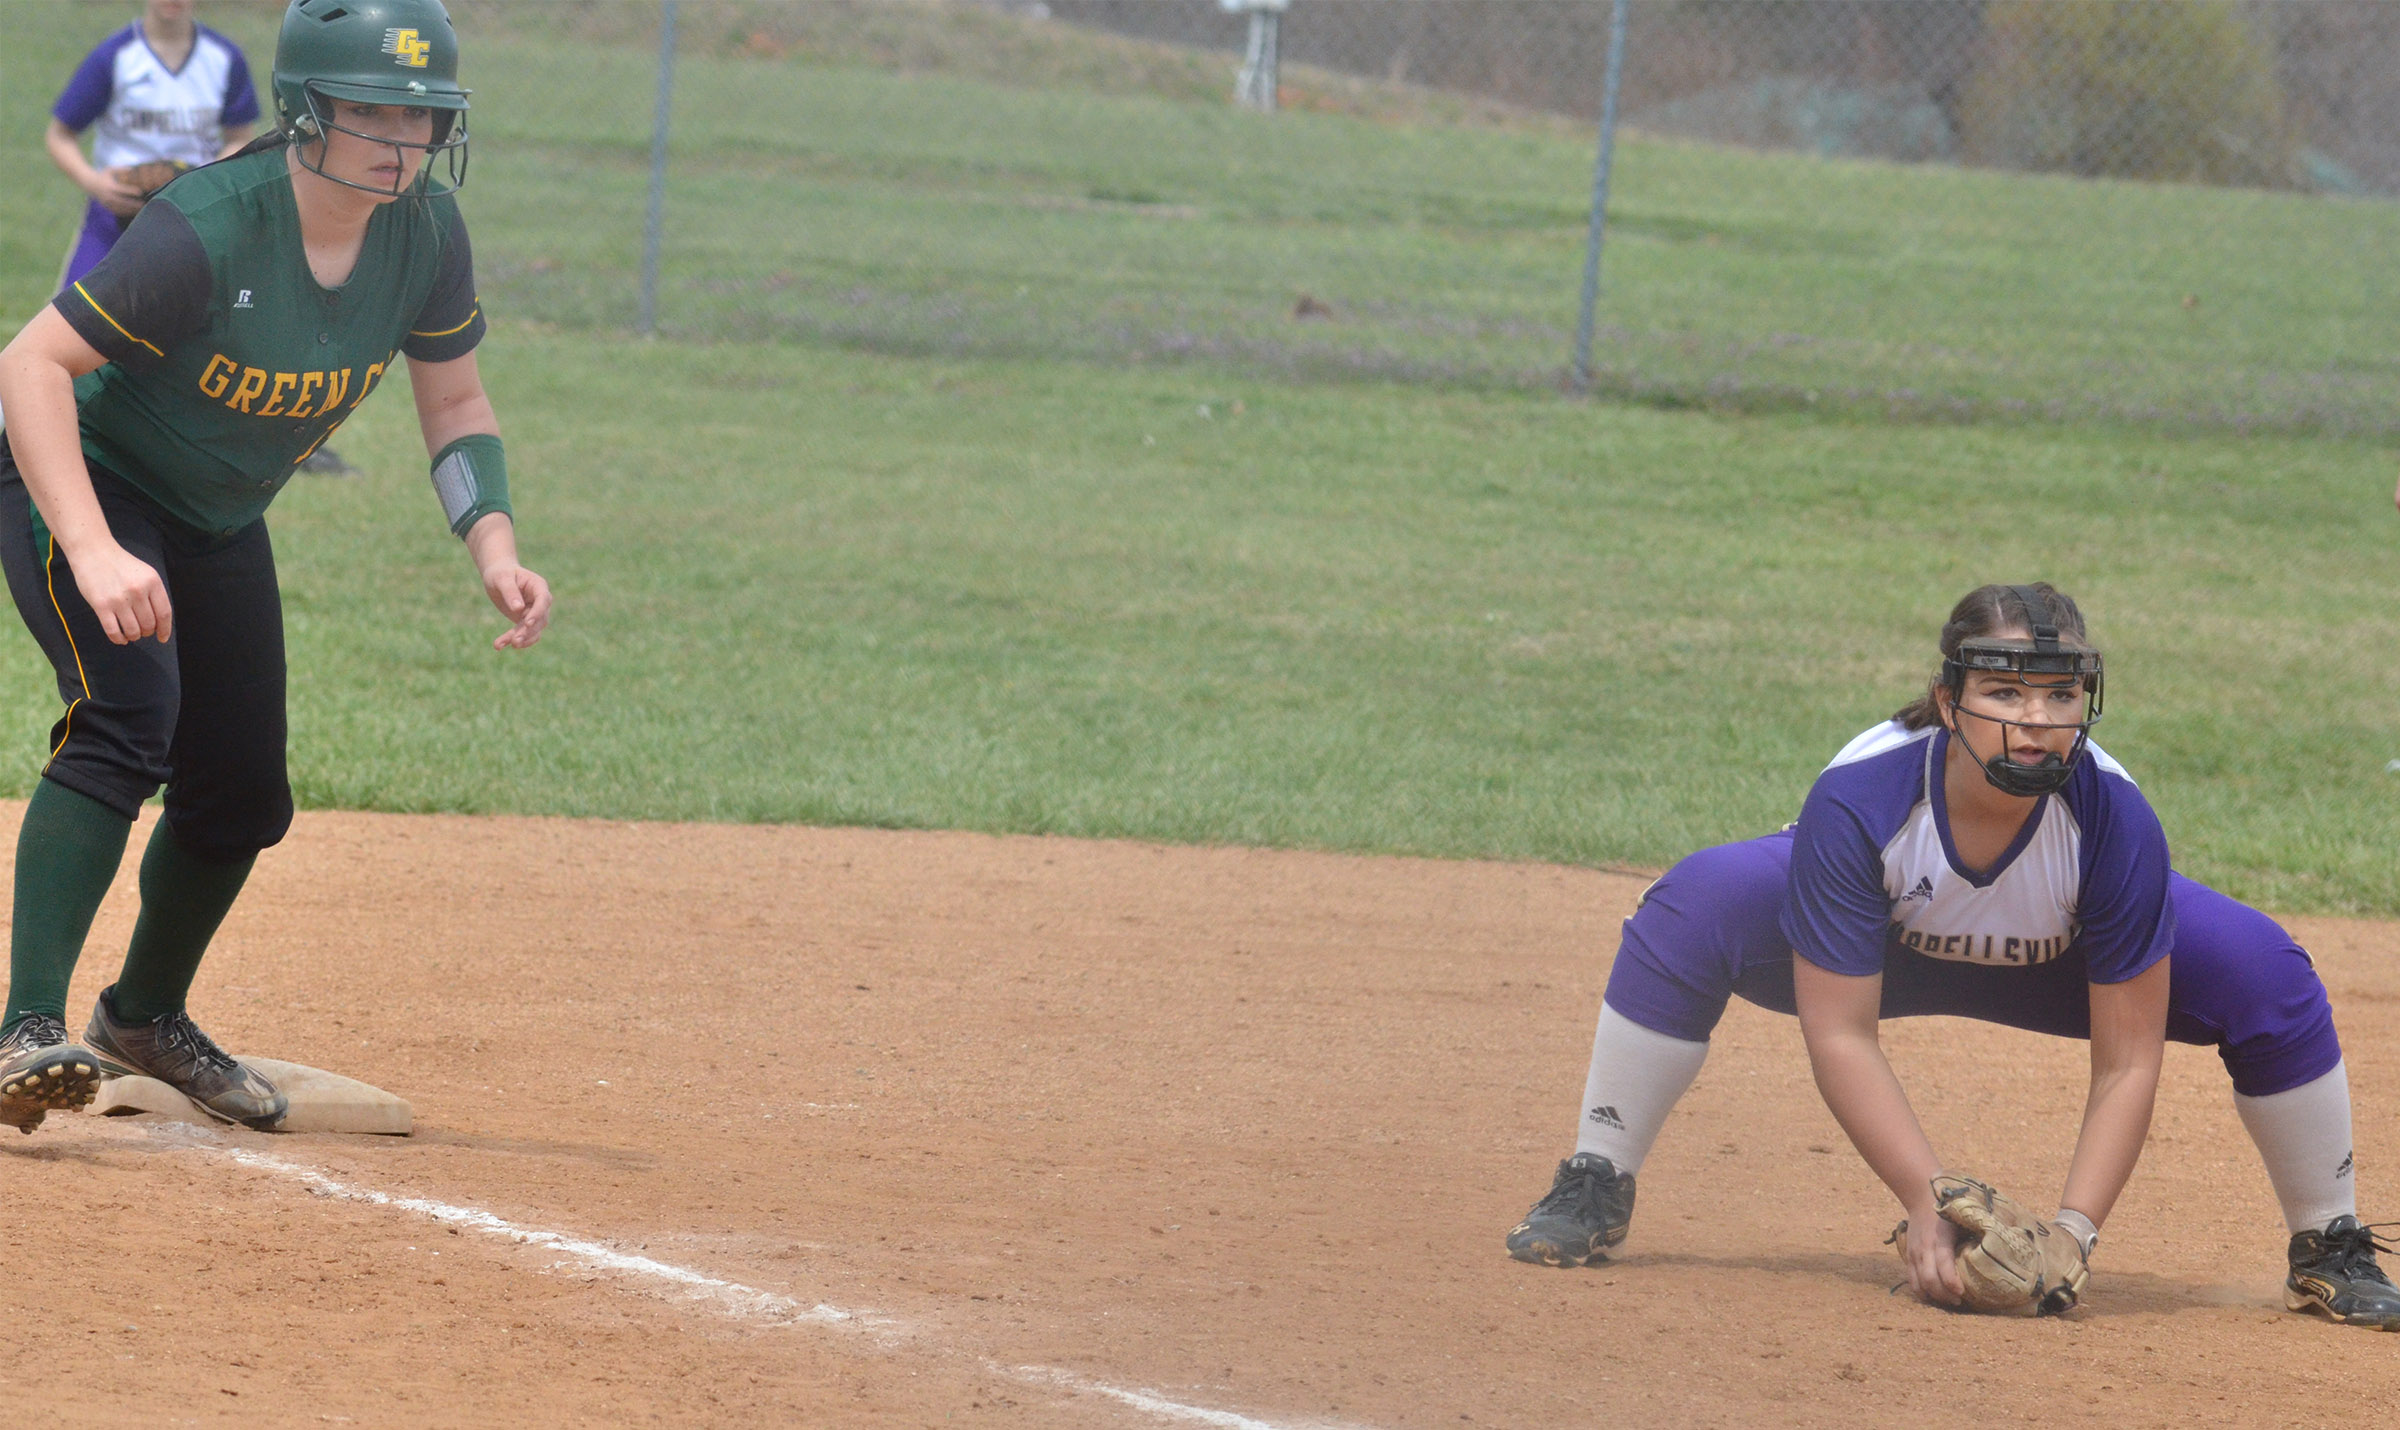 CHS senior Kailey Morris mans third base.